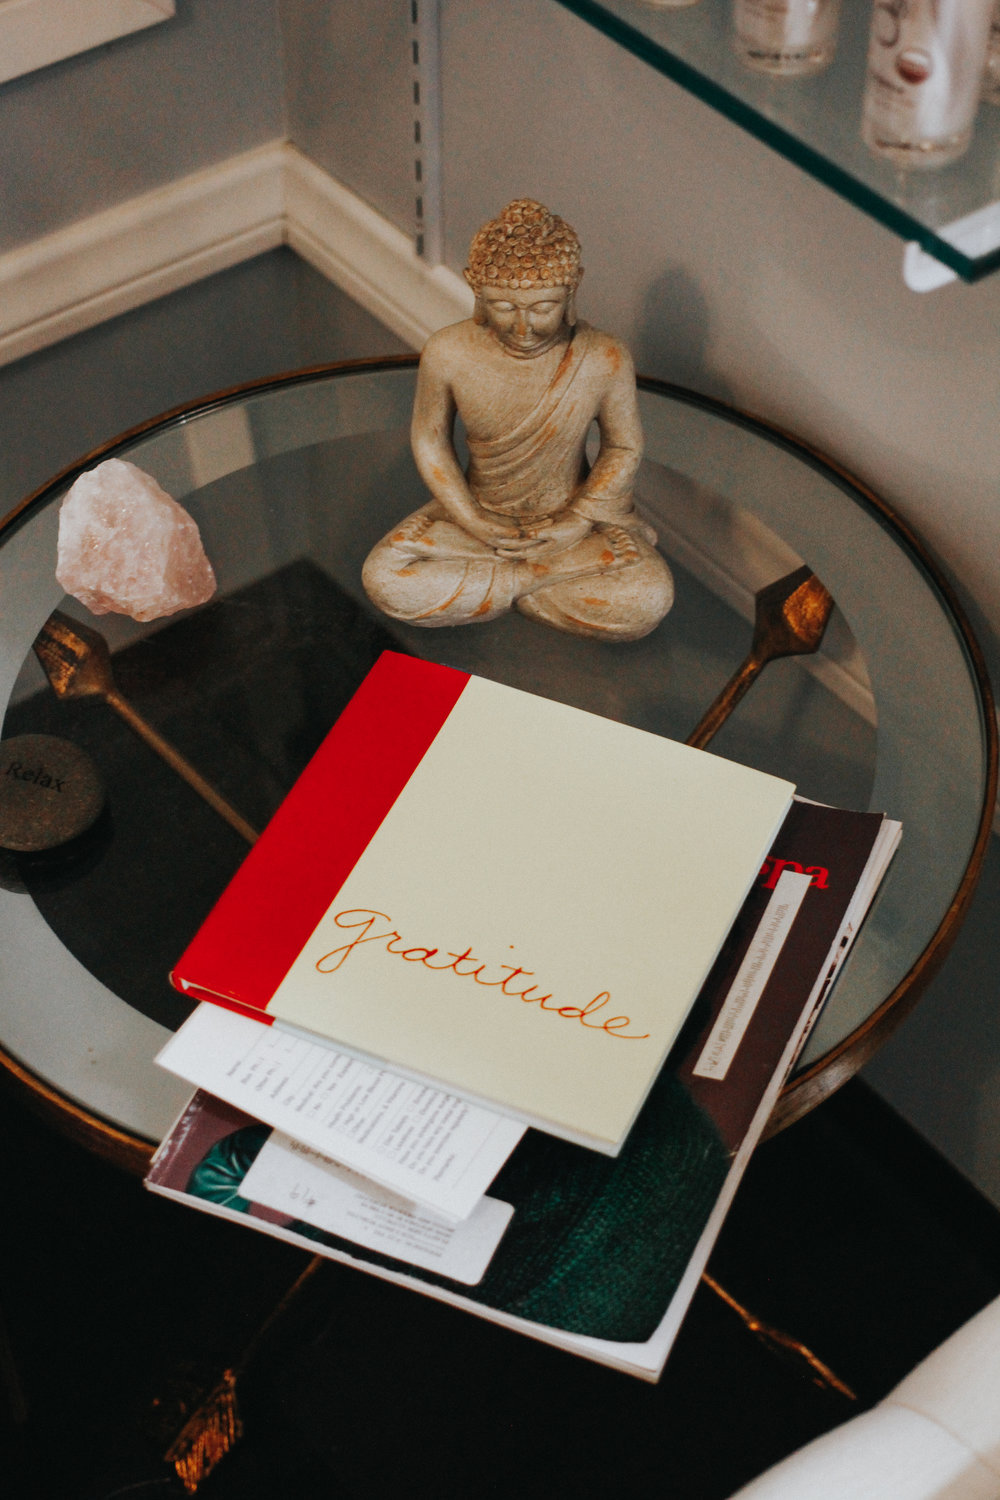 Books and buddhas make Gayle's facial room feel zen and relaxed.